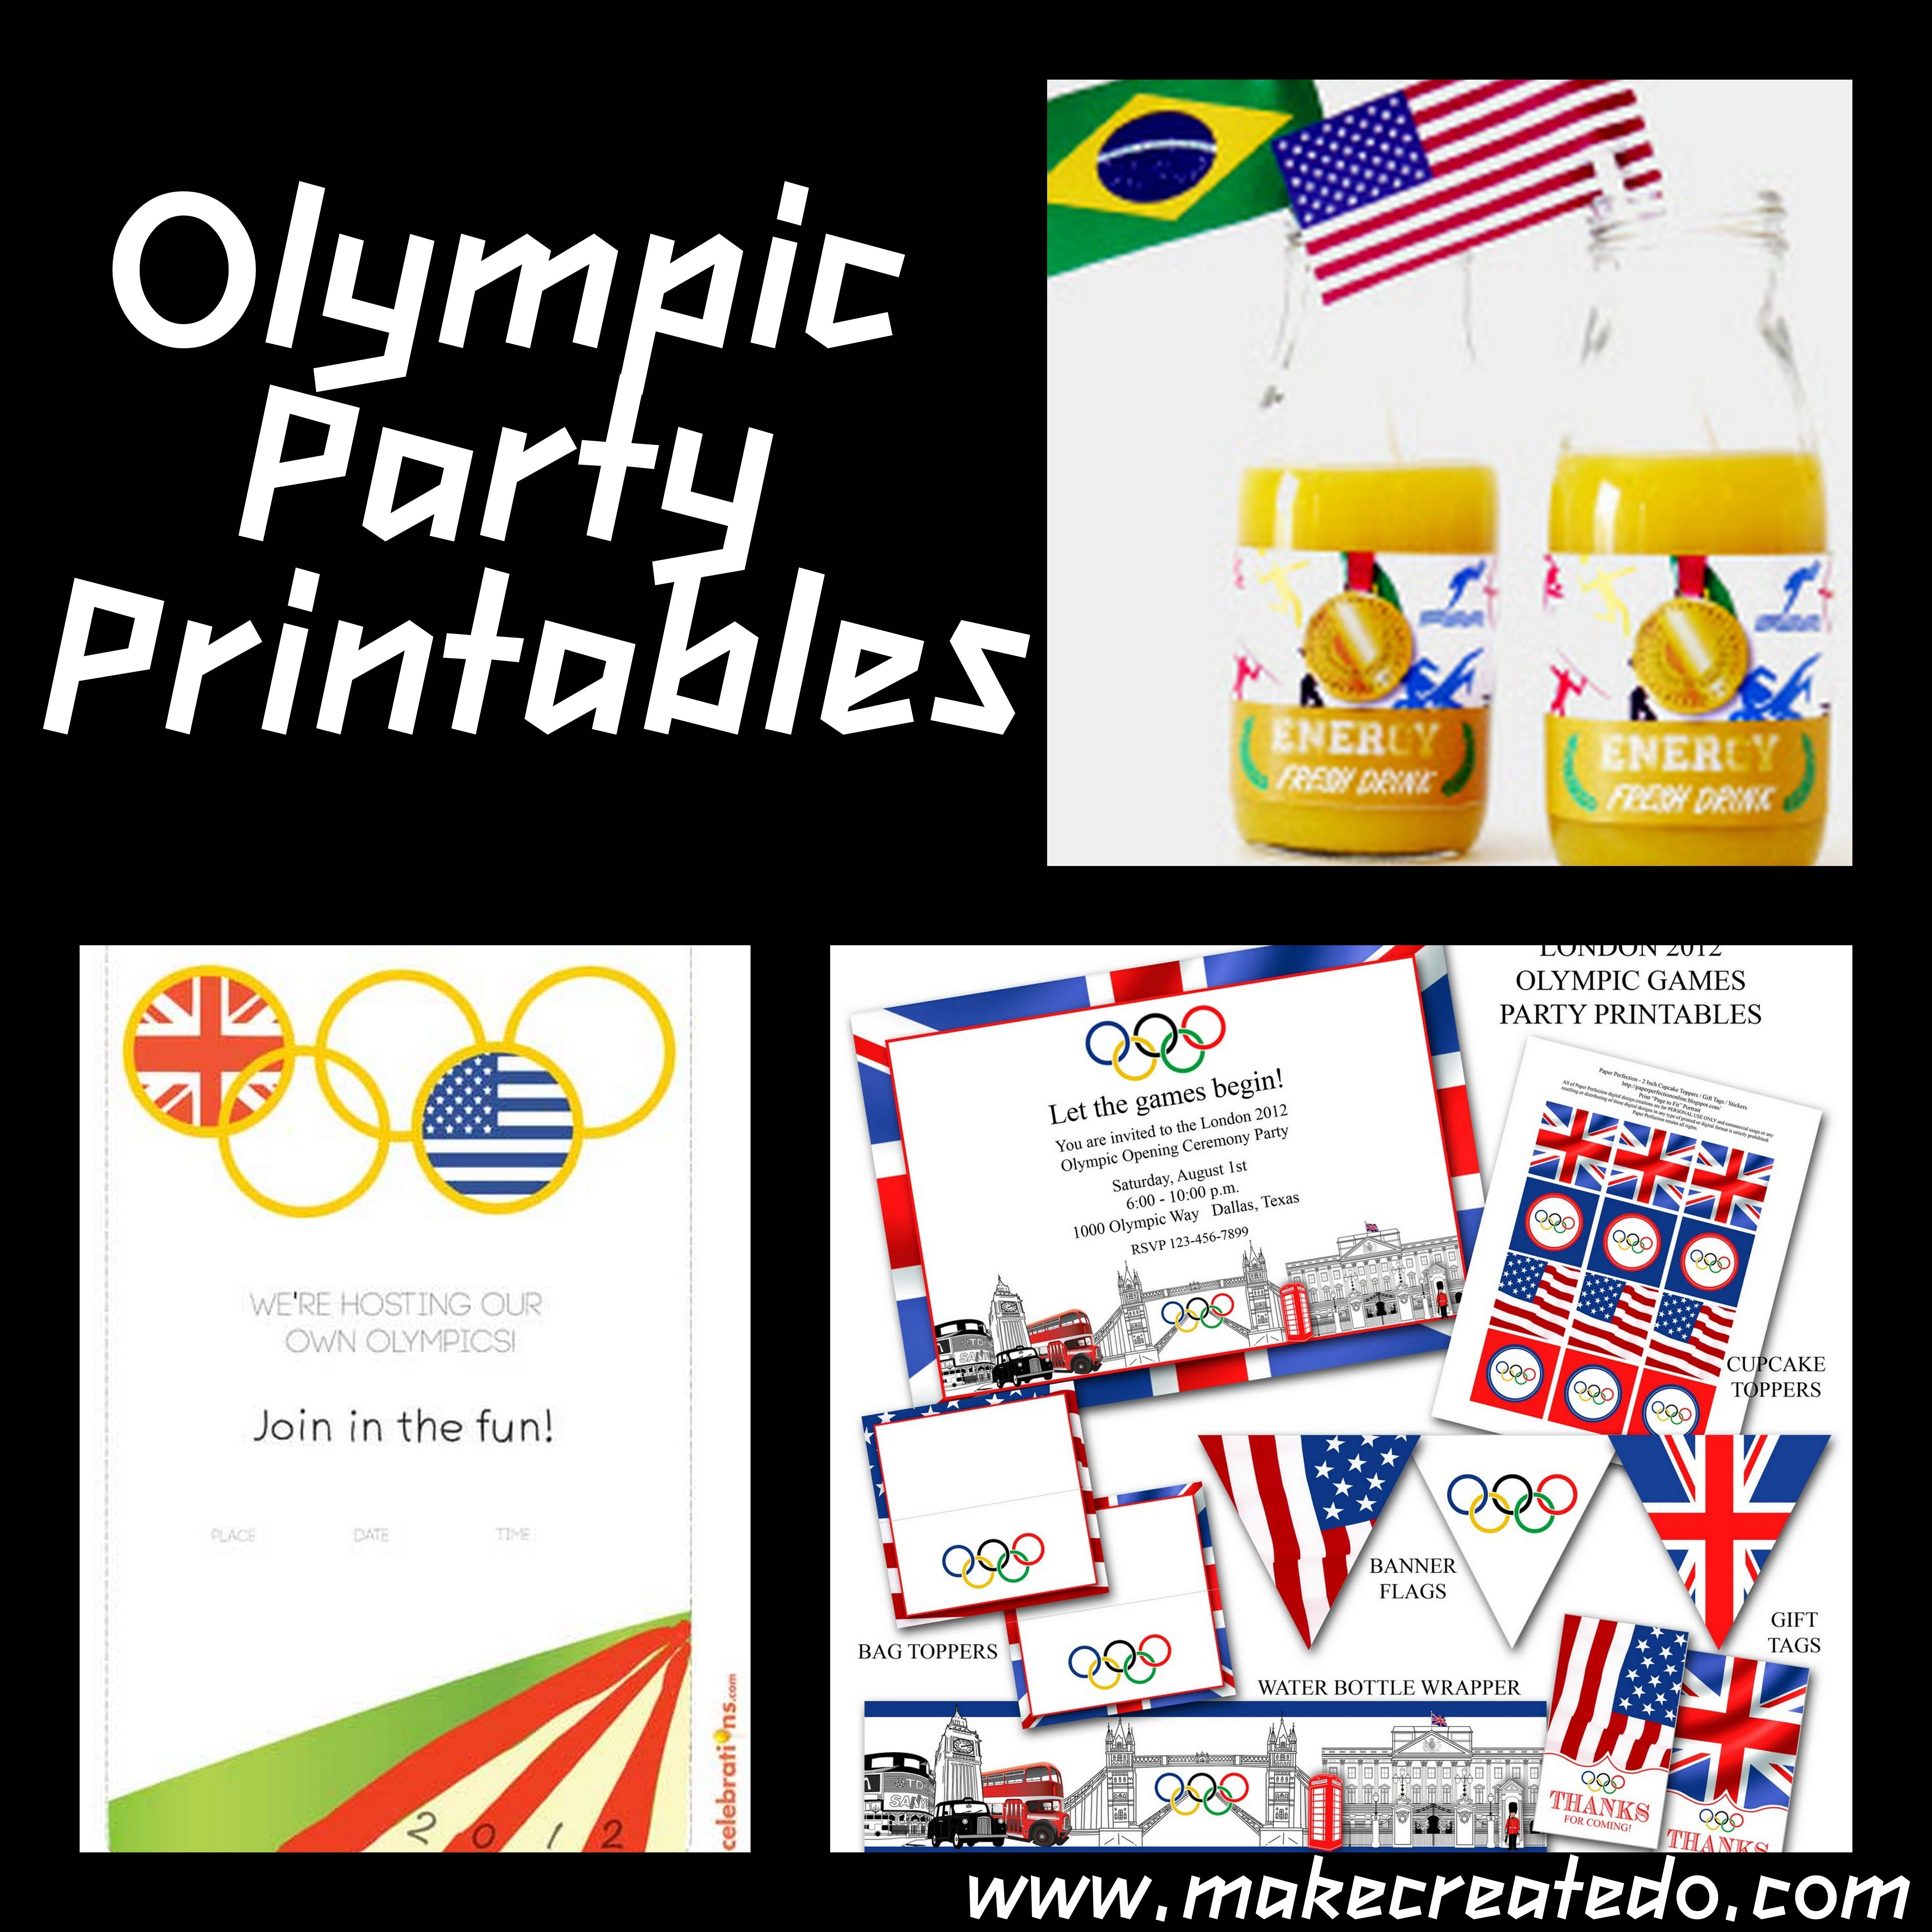 Olympic Games Birthday Party ideas and Inspiration Make Create Do